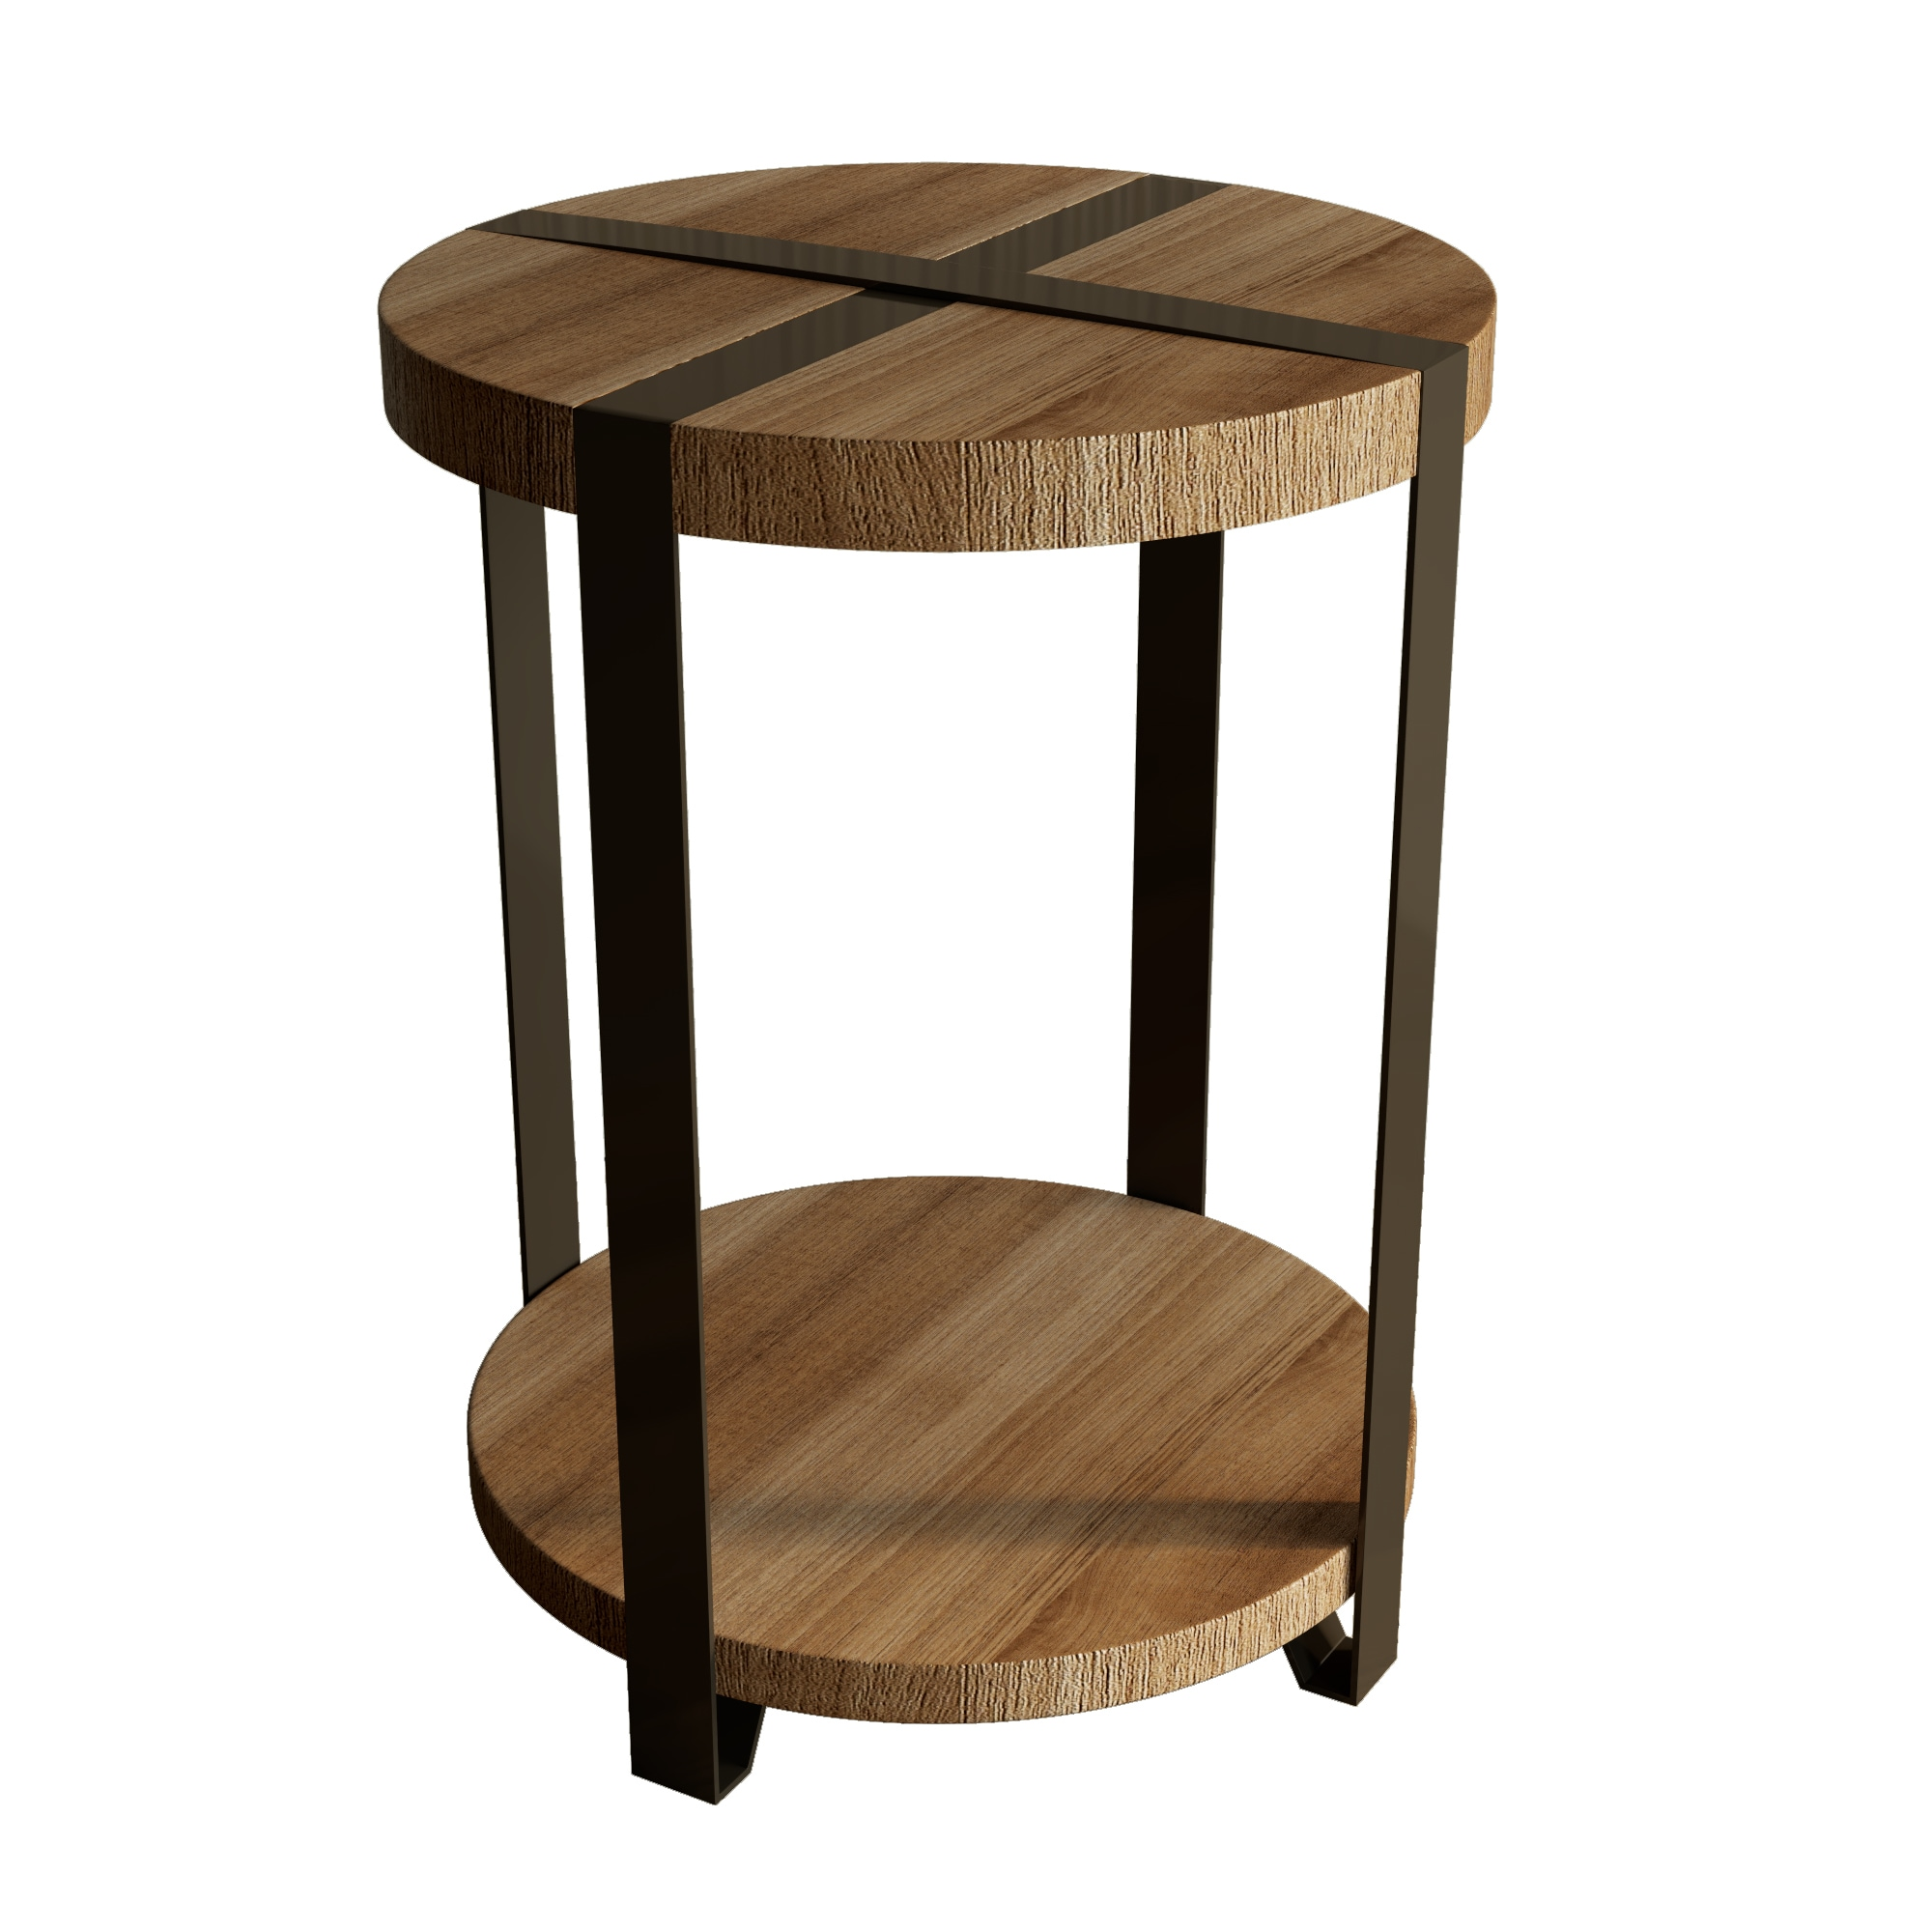 Shop carbon loft kenyon natural reclaimed wood metal rustic round end table on sale free shipping today overstock com 20306499